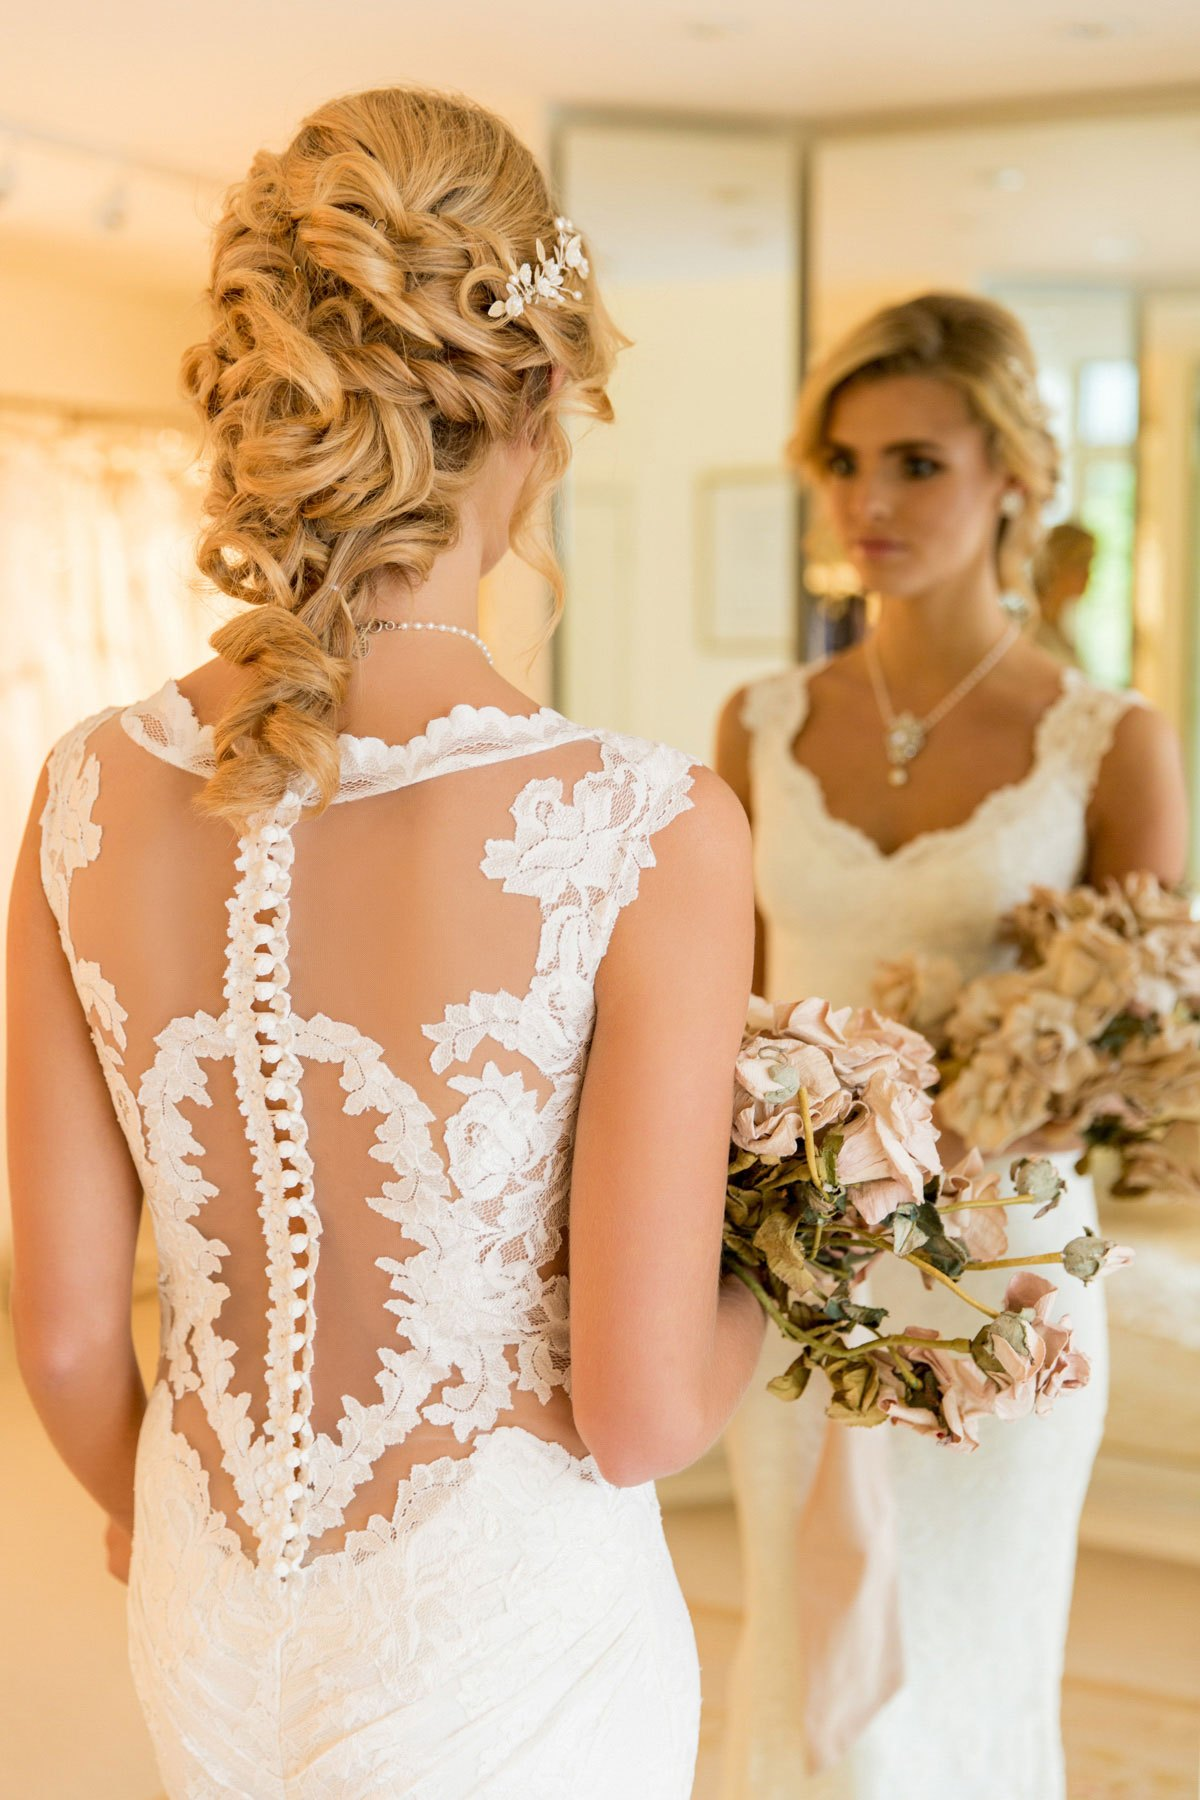 Pia Stretch Lace Wedding Dress